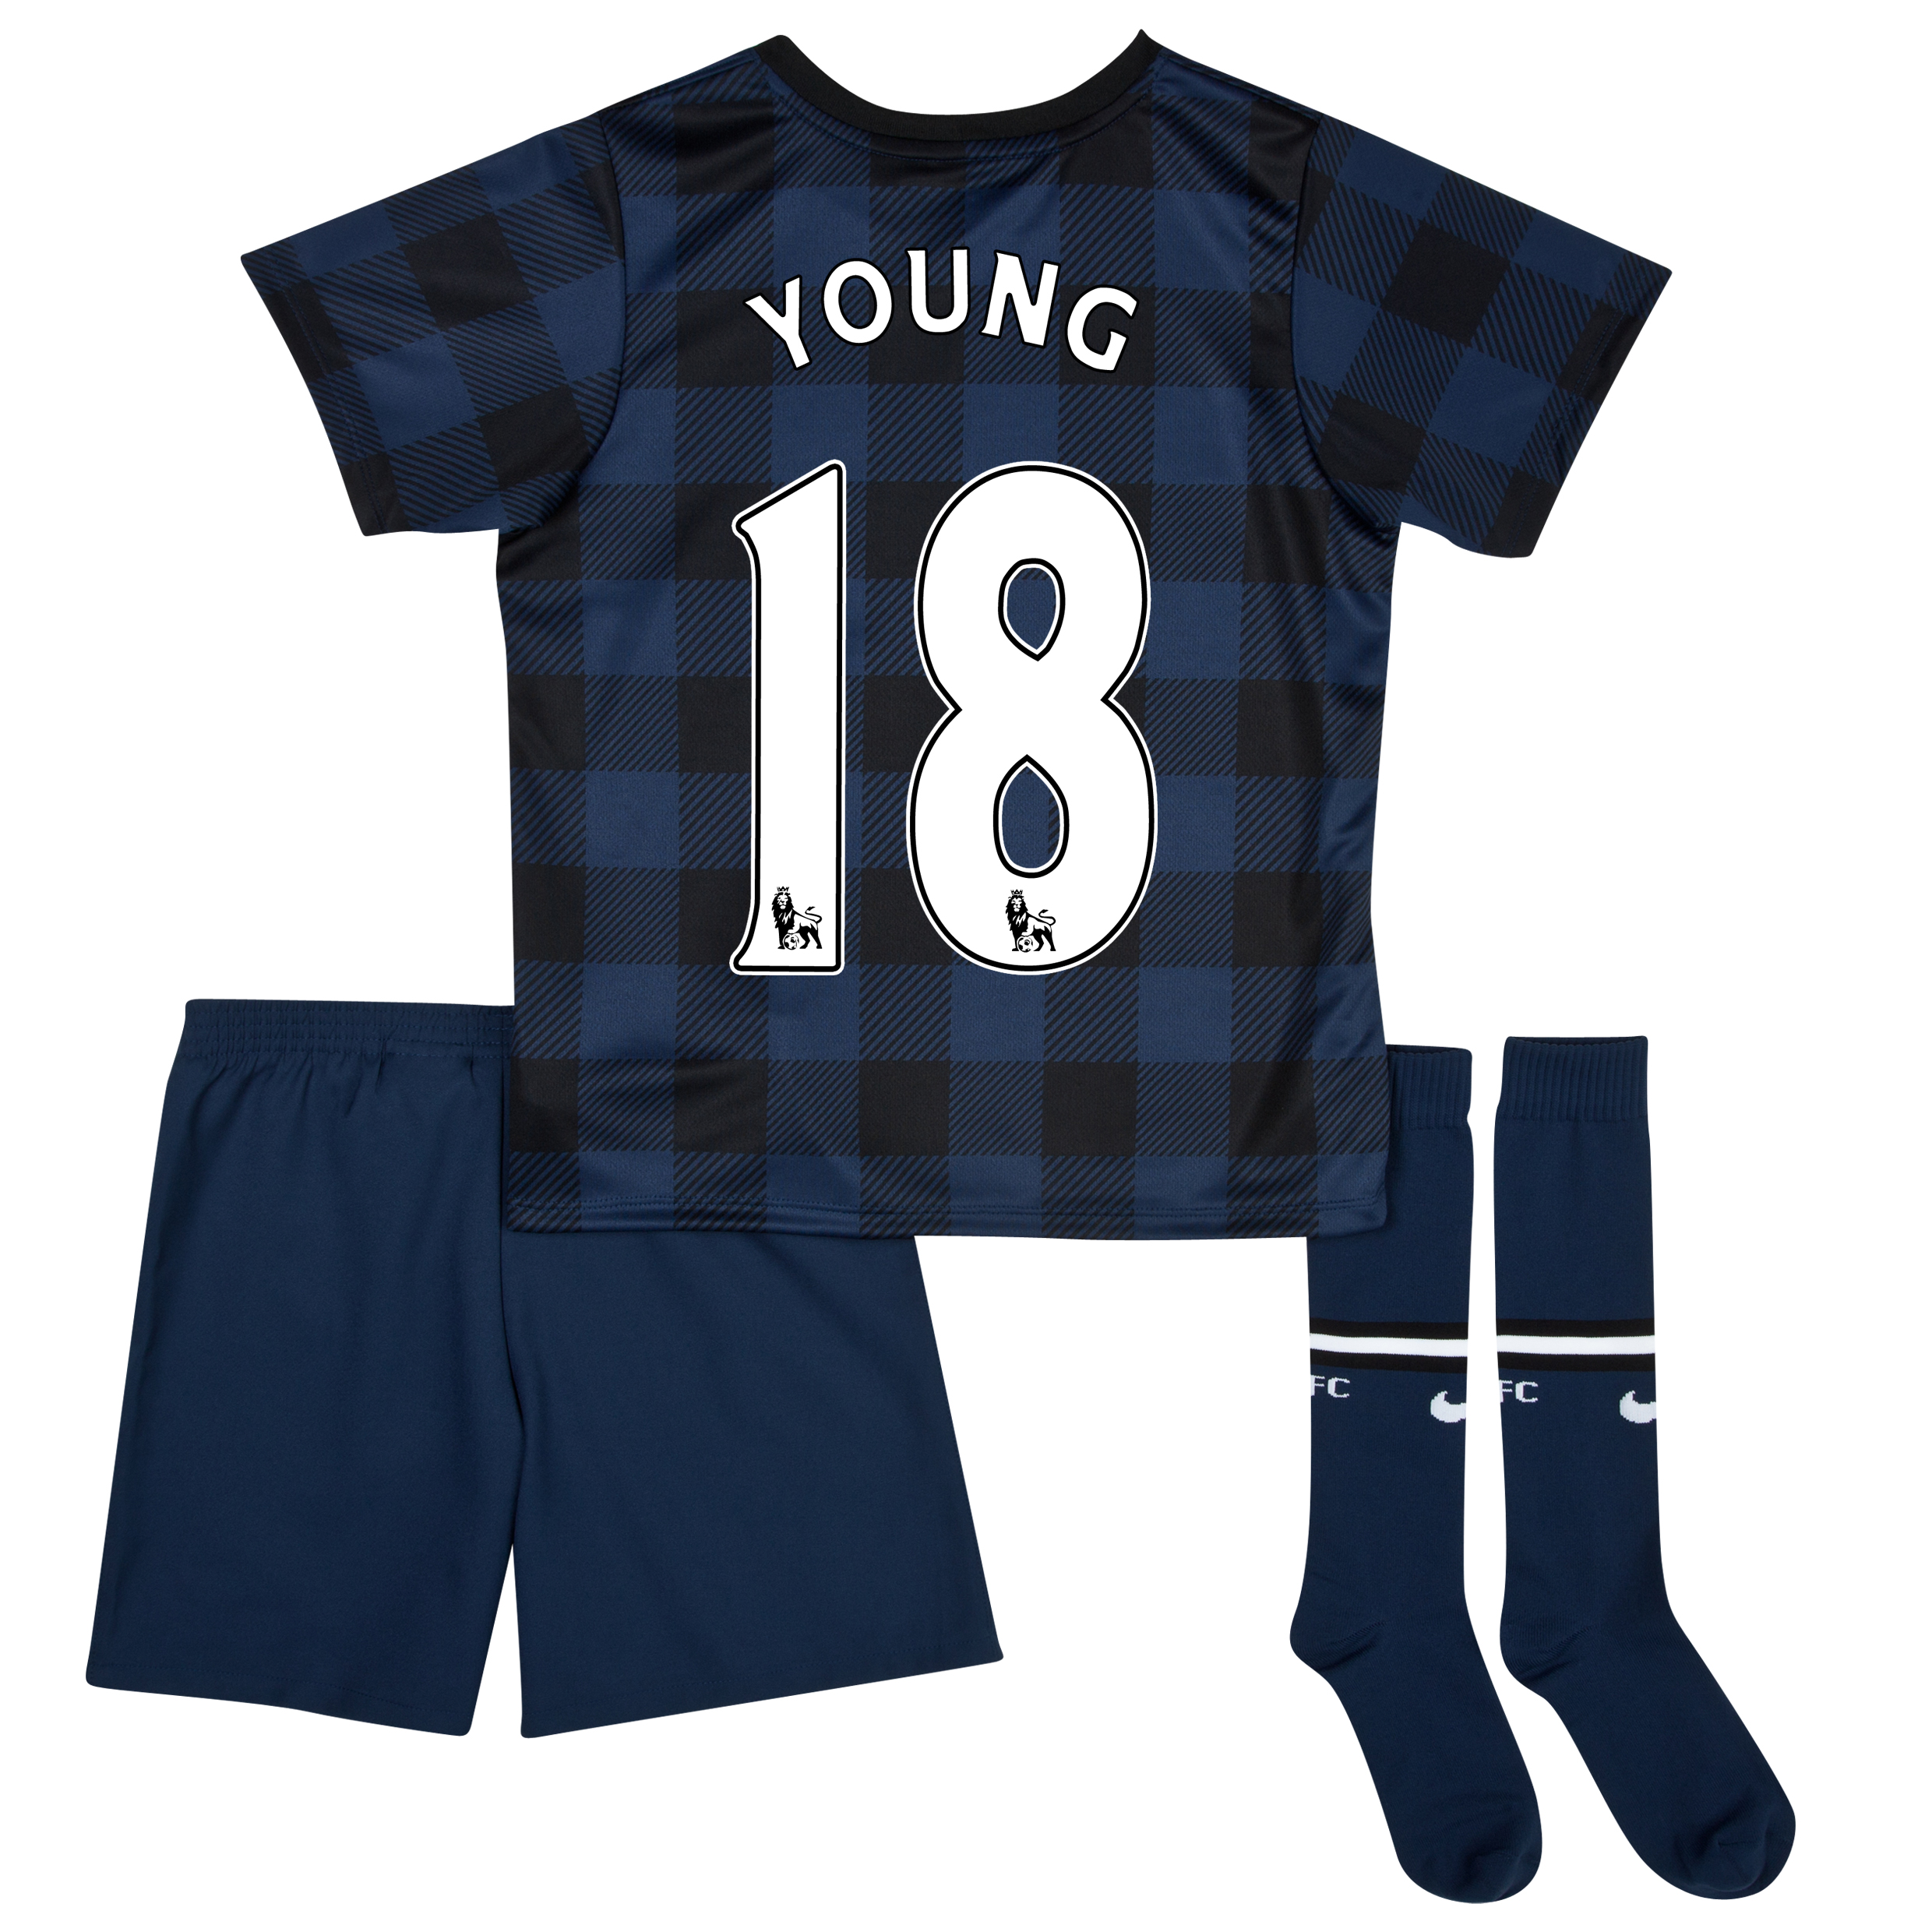 Manchester United Away Kit 2013/14 - Little Boys with Young 18 printing